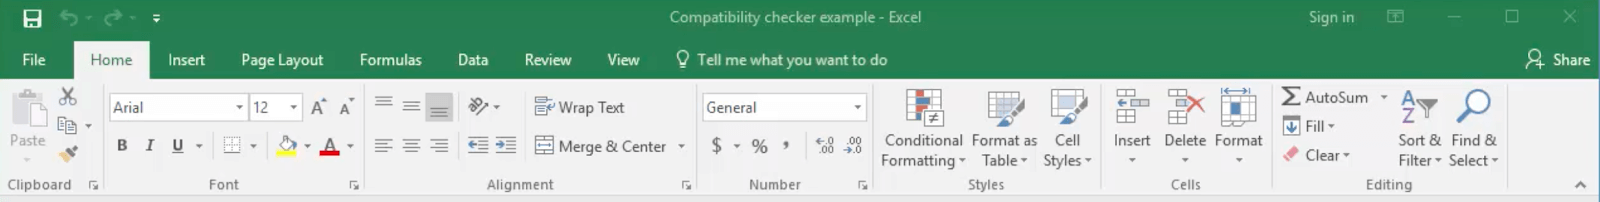 excel compatibility mode